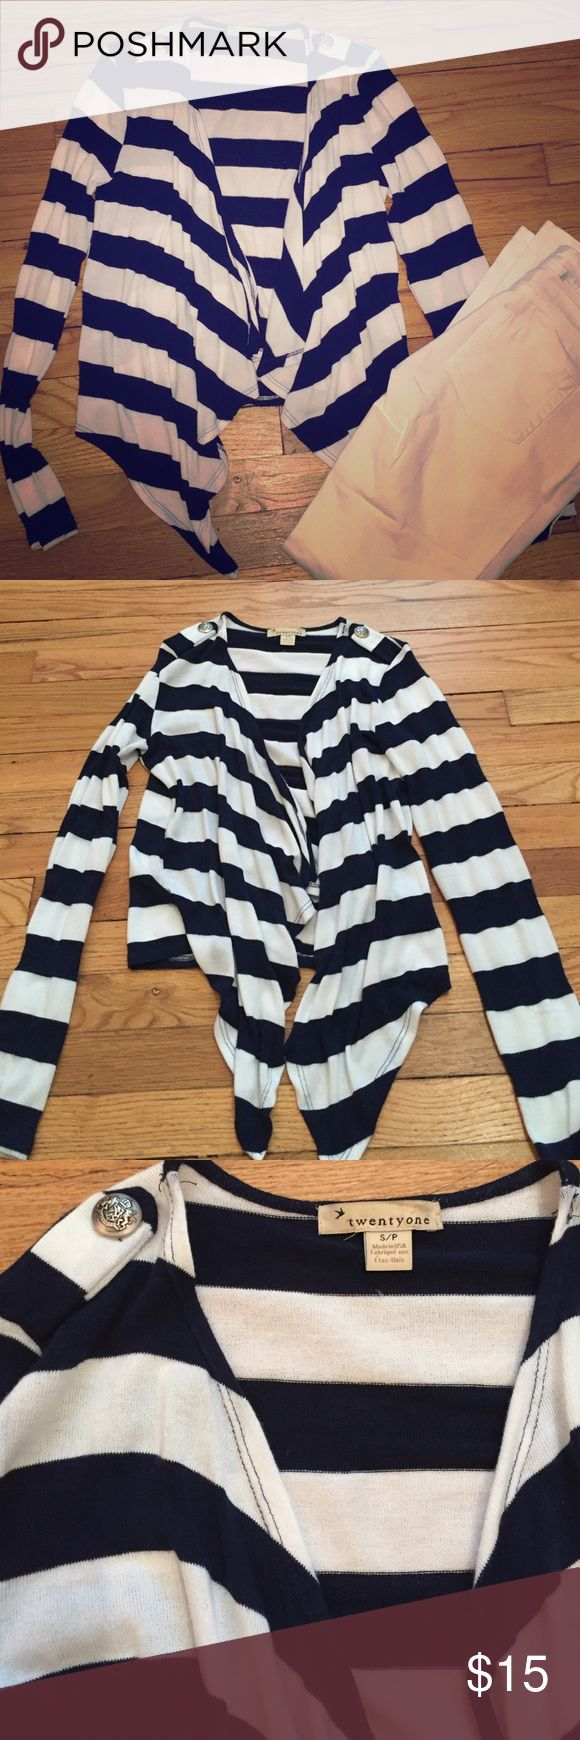 F21 nautical cardigan Very cute, only worn once F21 nautical open front cardigan. Navy and white horizontal stripes. 2 silver decorative buttons on the shoulder Forever 21 Sweaters Cardigans